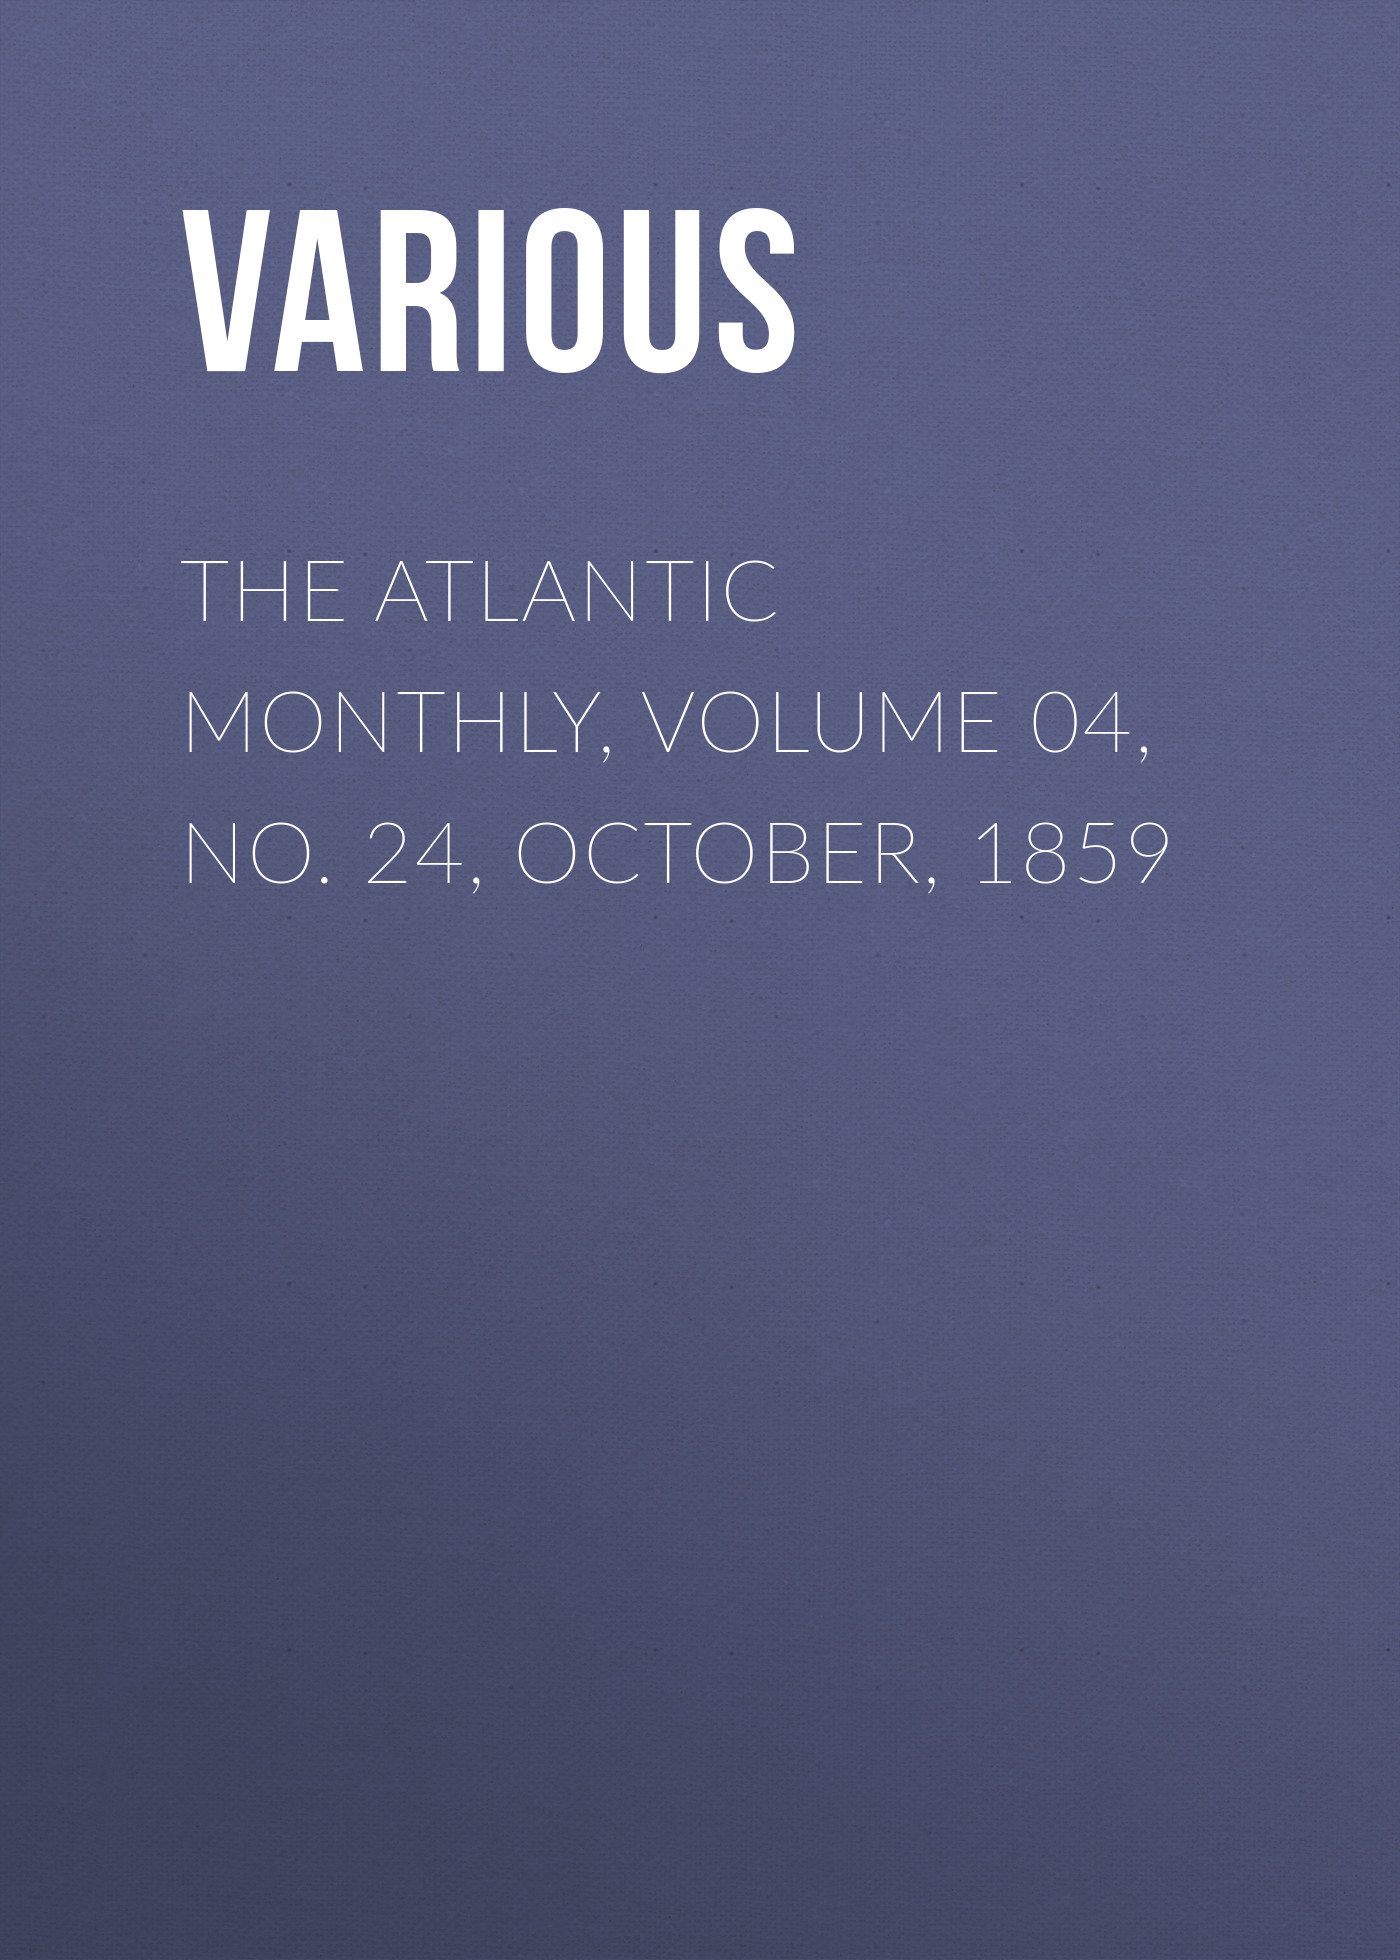 Various The Atlantic Monthly, Volume 04, No. 24, October, 1859 october